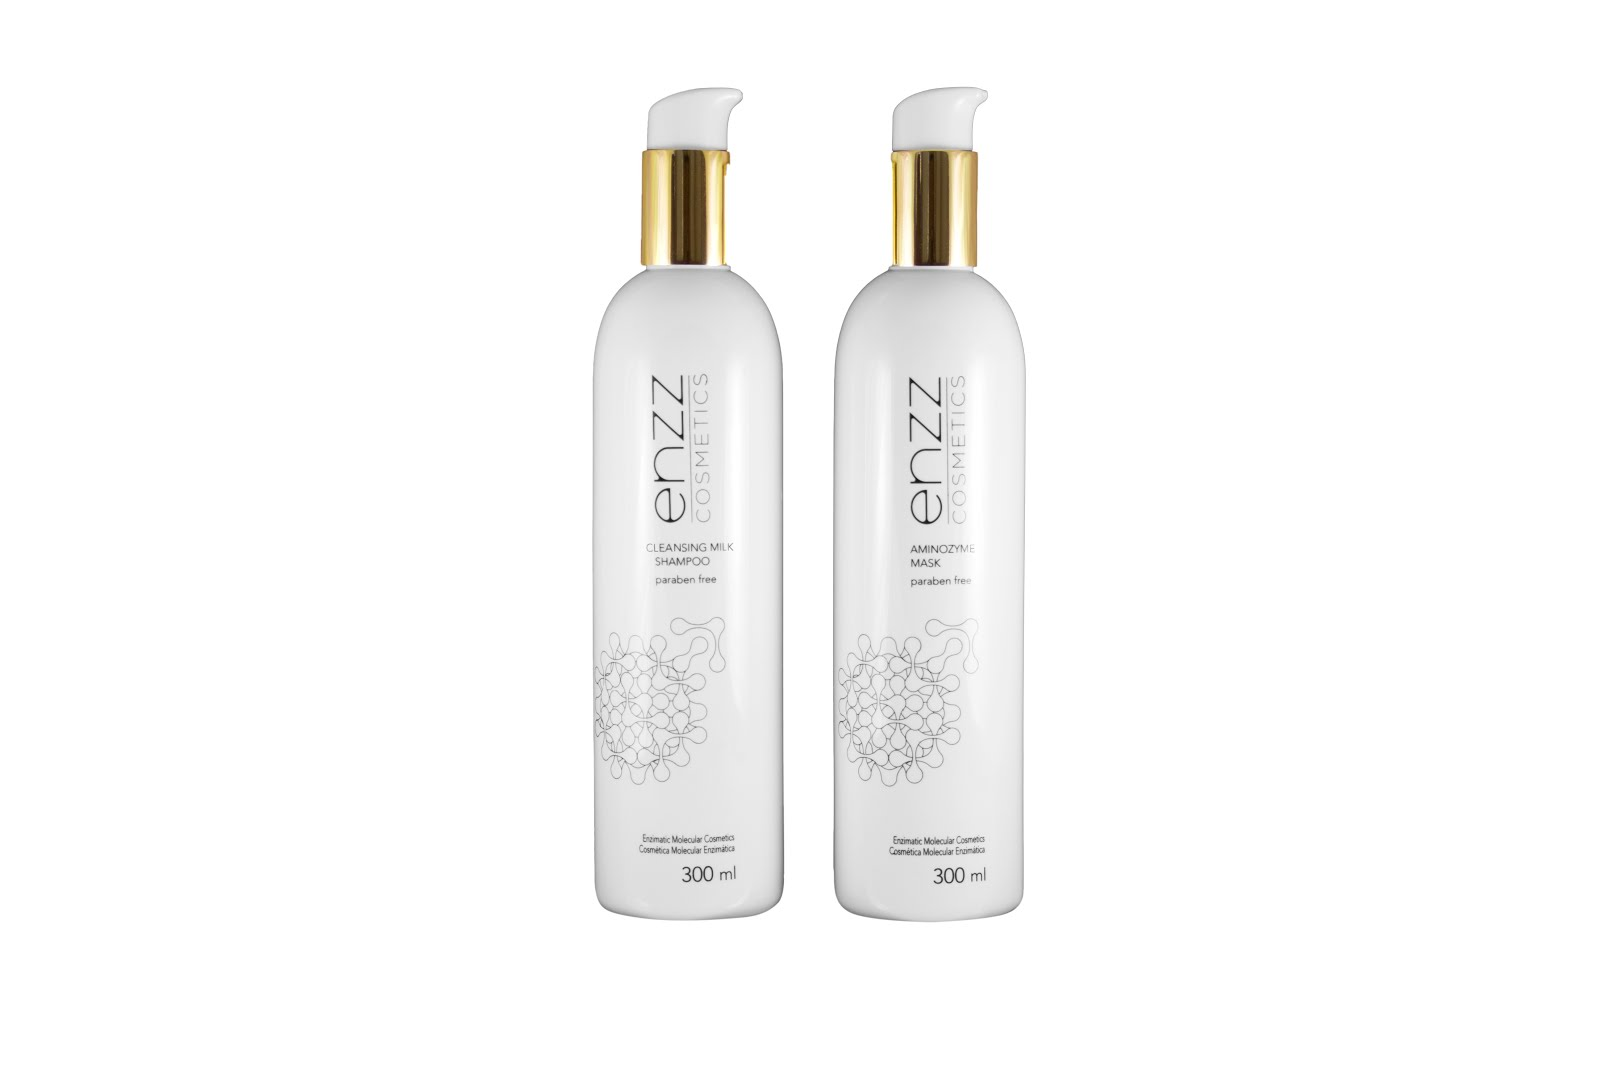 Cleansing milk shampoo - 300ml. | Aminozyme mask - 300ml.